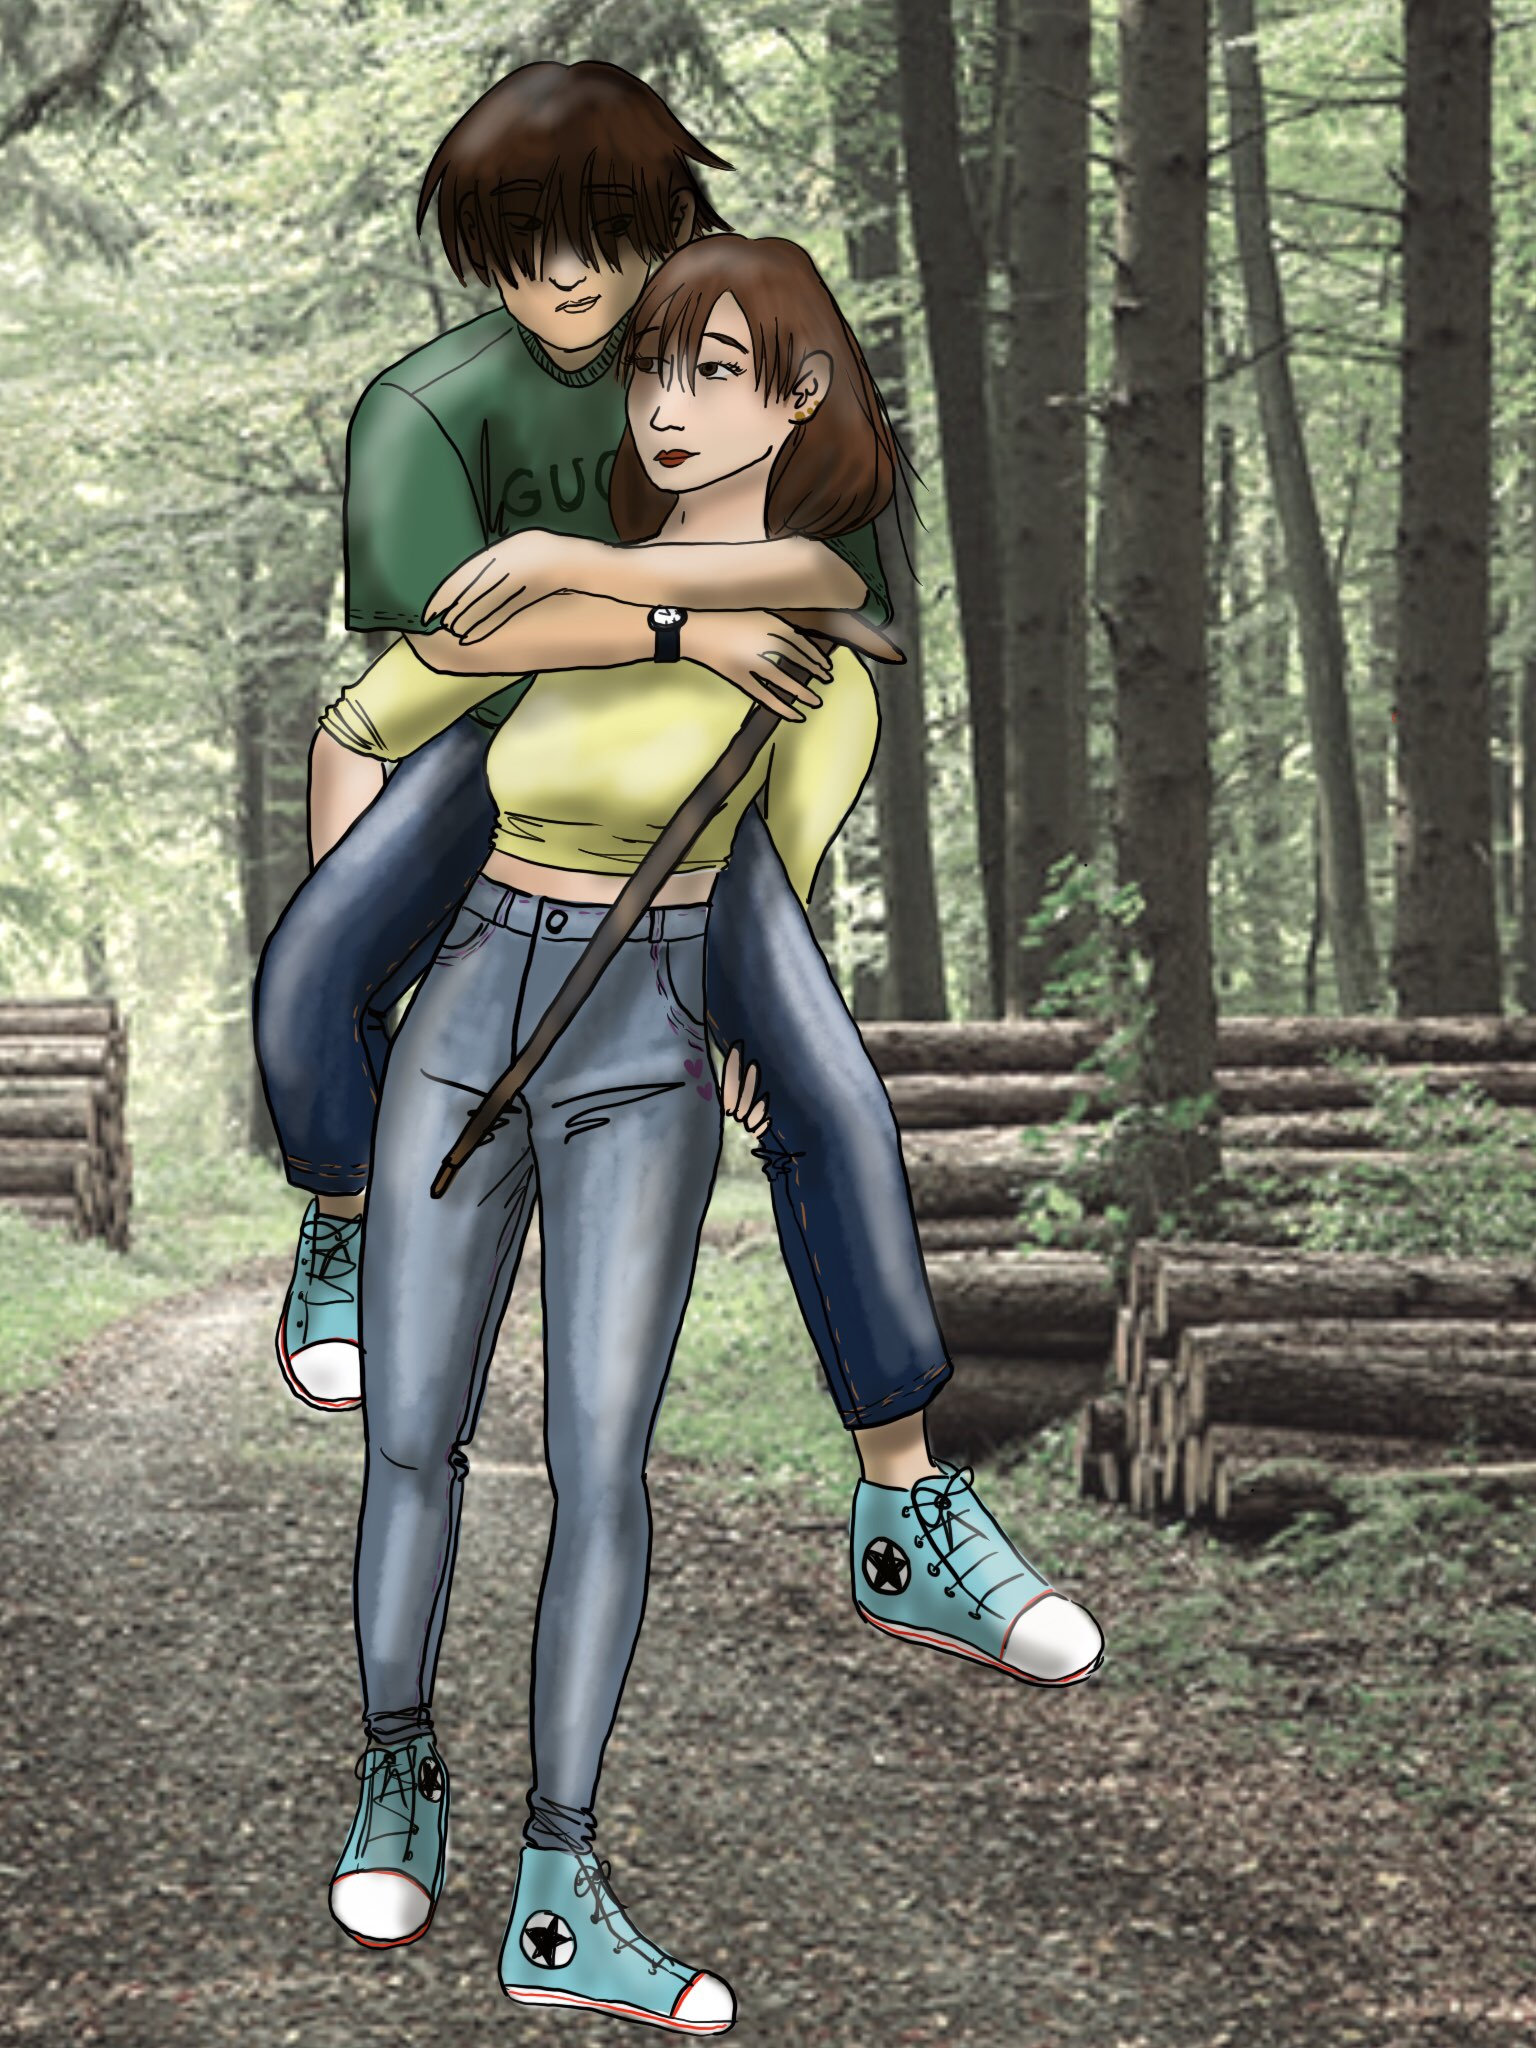 Couples Look (by PM) - VERSION 2.0 Image0